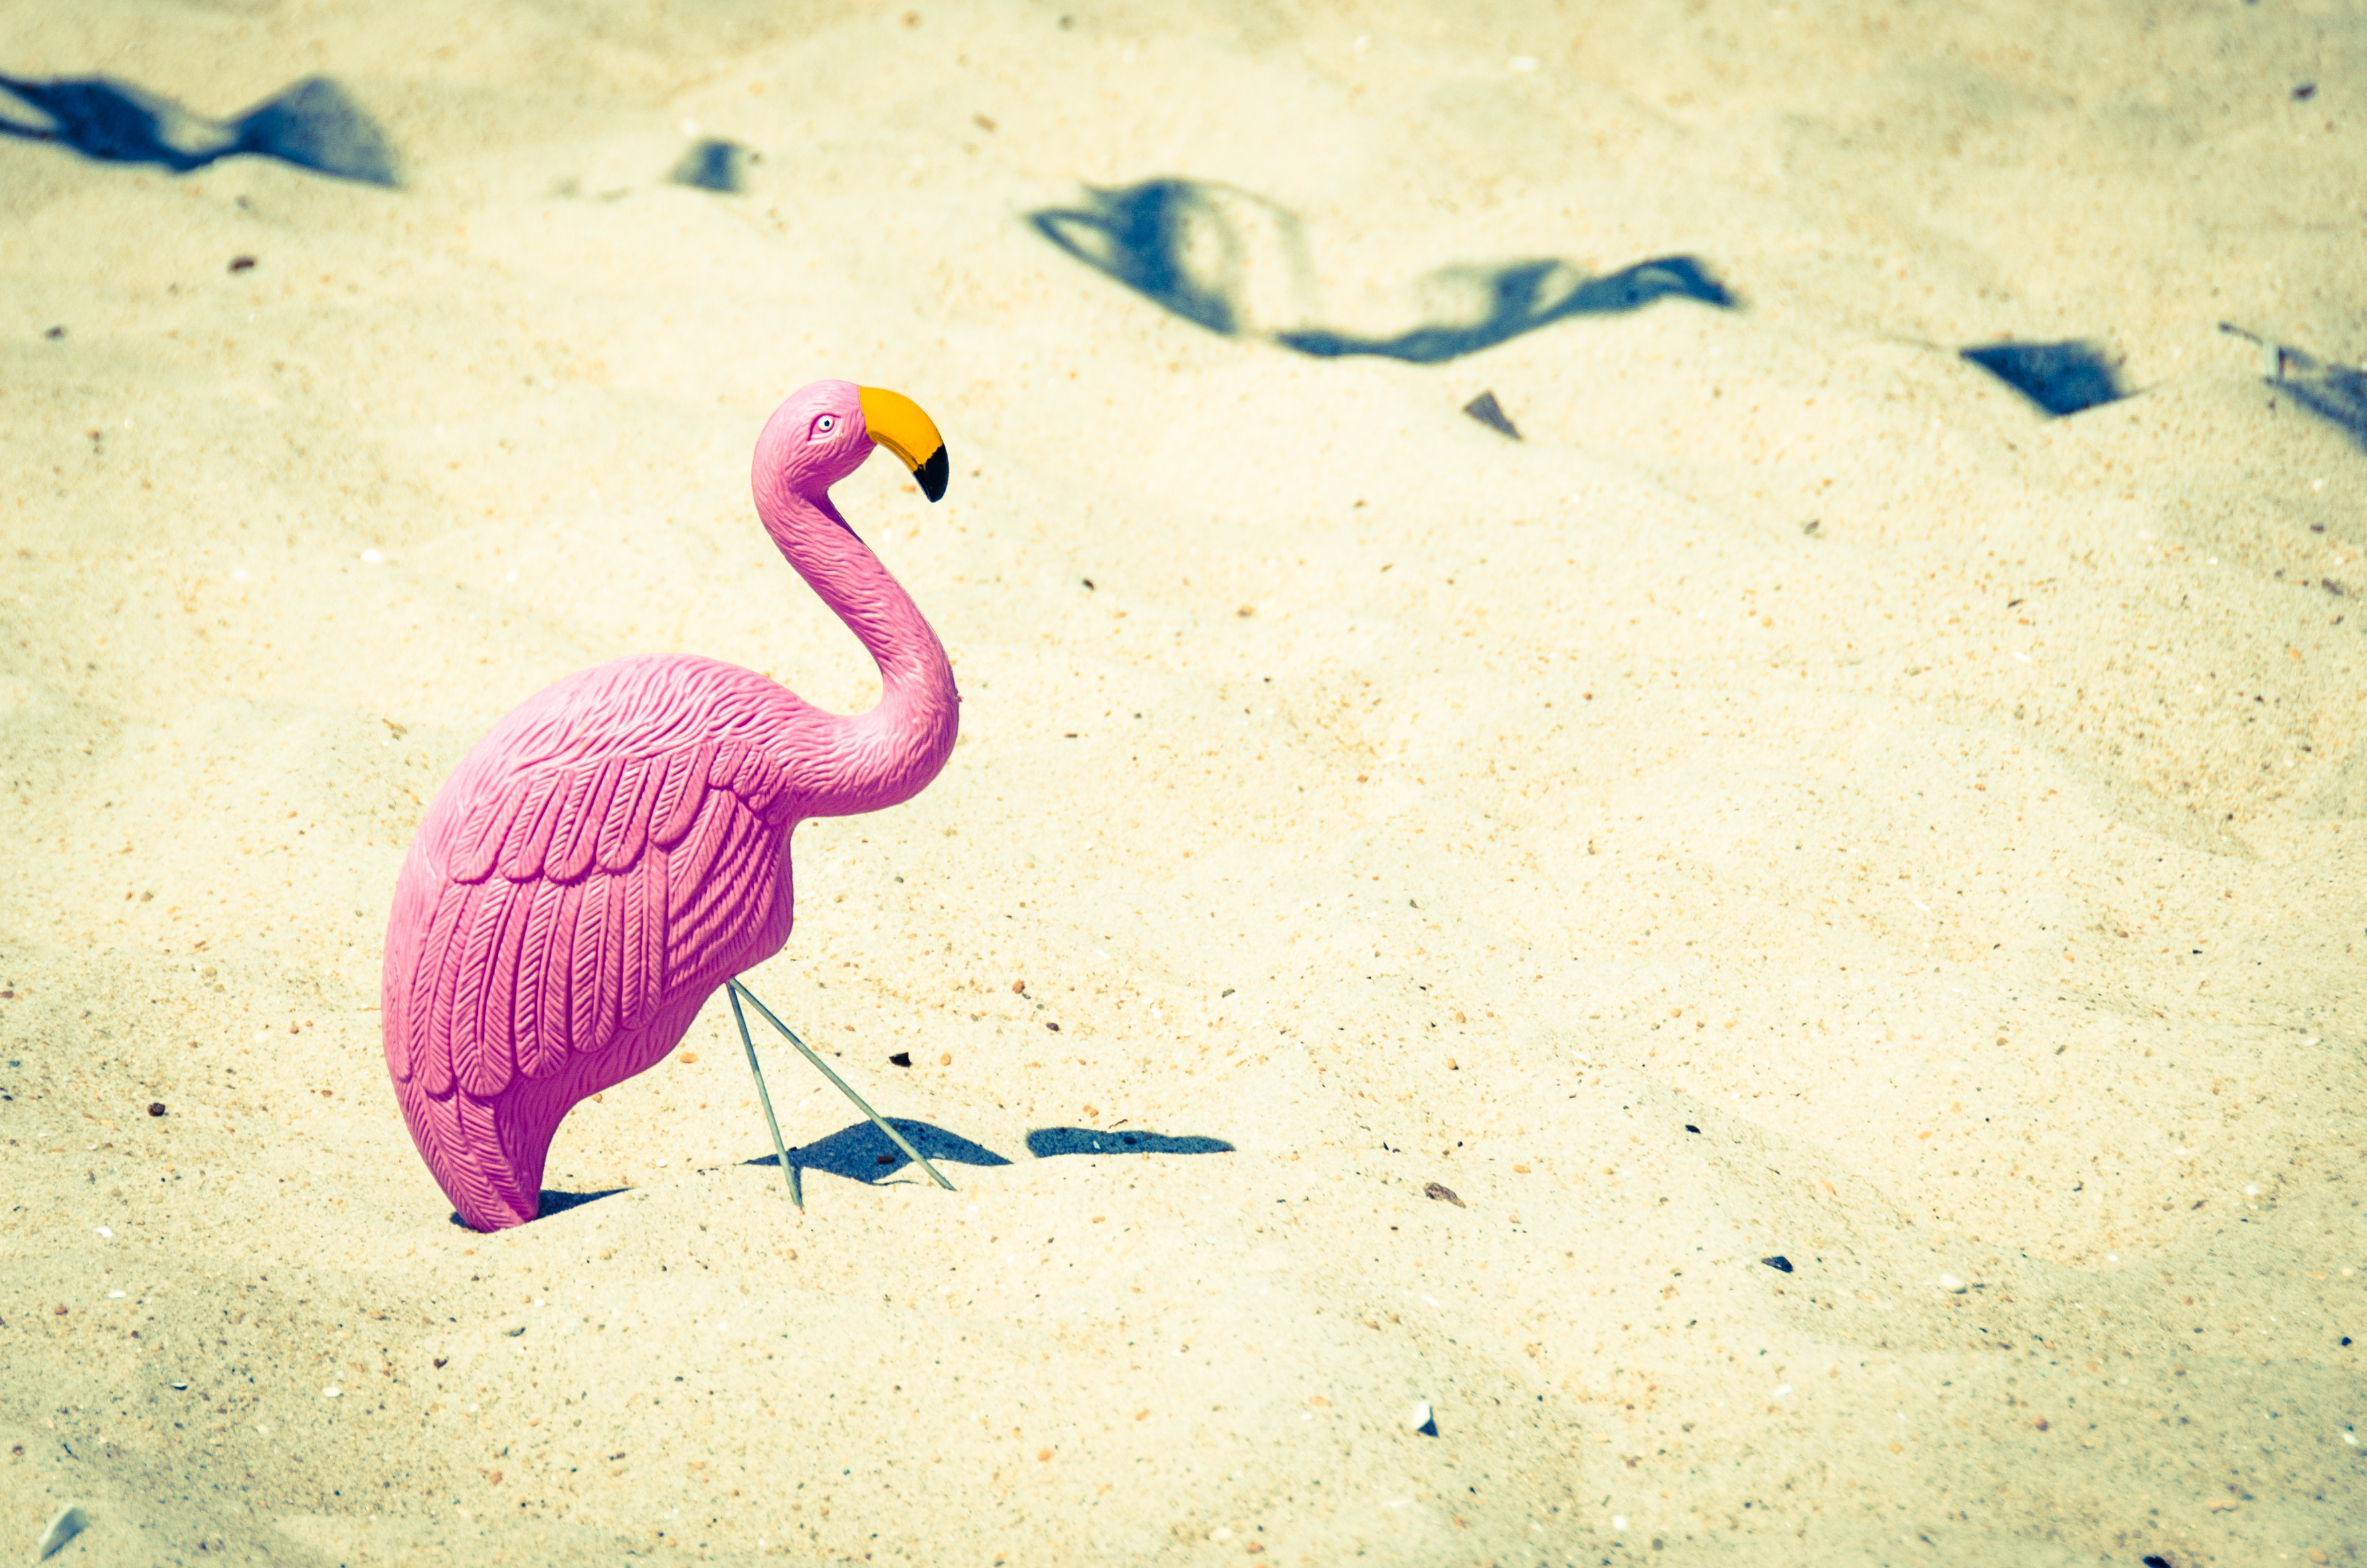 A lone flamingo ornament in the sand.